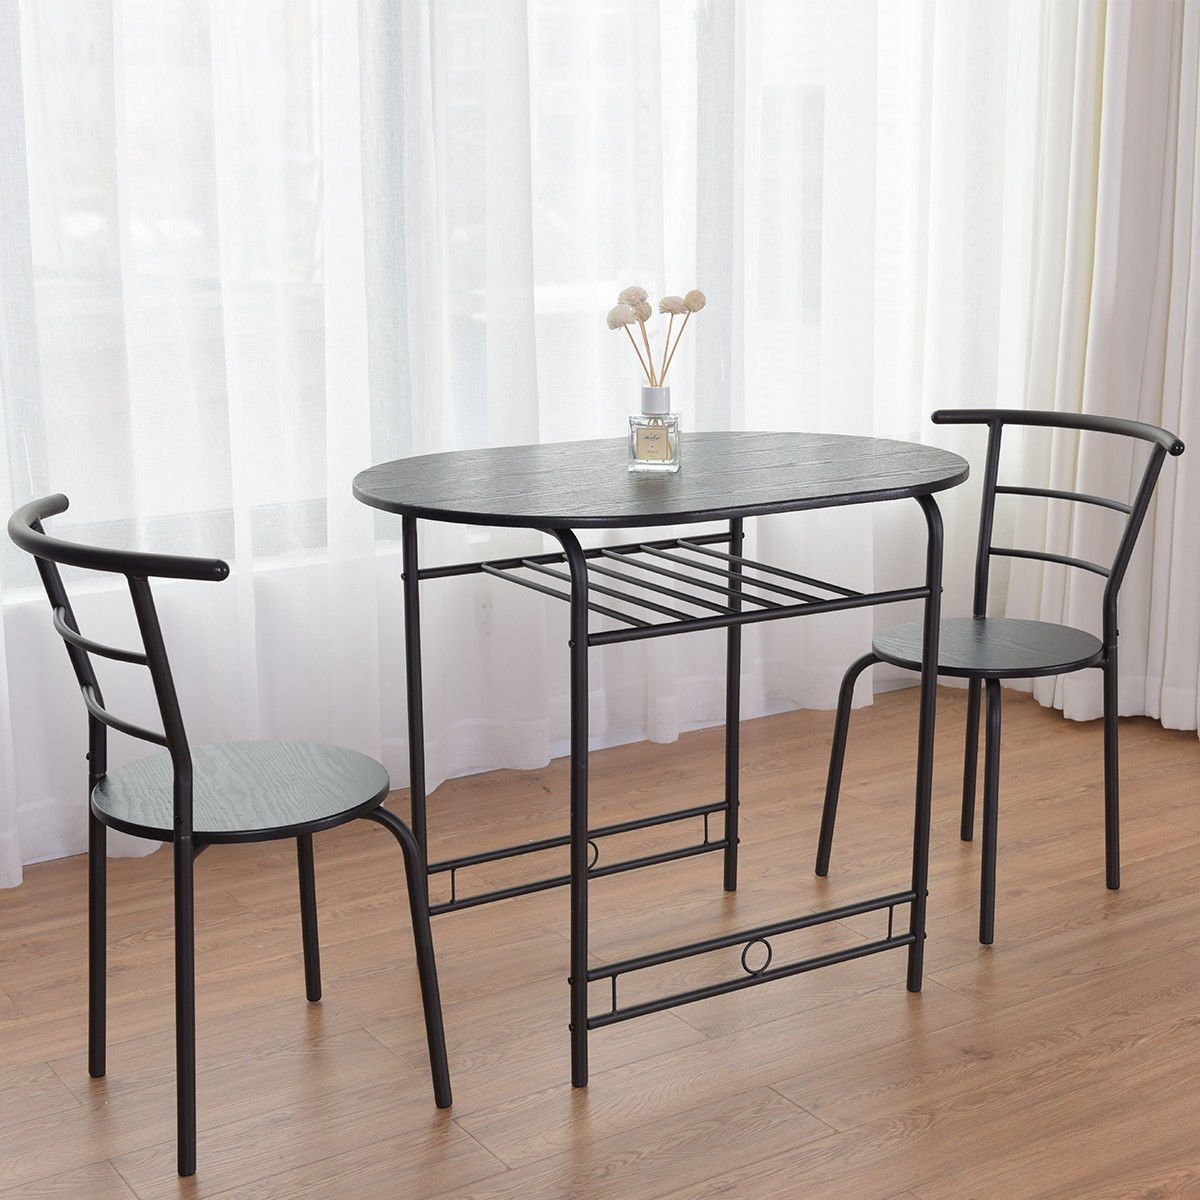 Giantex 3 PCS Dining Table Set w/1 Table and 2 Chairs Home Restaurant Breakfast Bistro Pub Kitchen Dining Room Furniture (Black) by Giantex (Image #3)